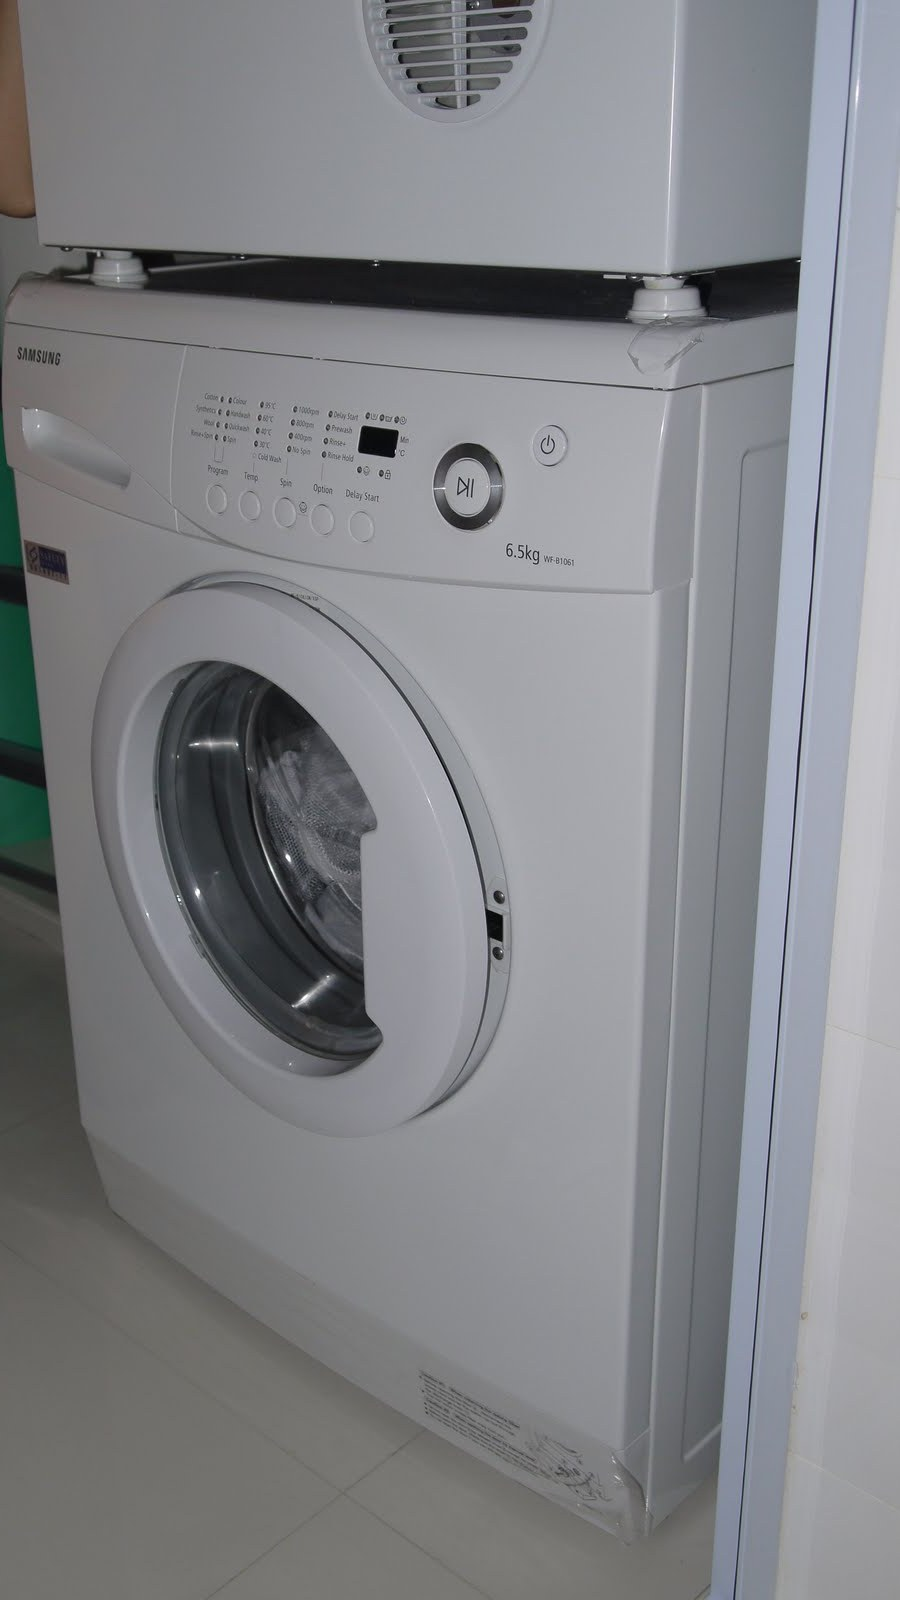 used washing machine, camping washing machine, best washing machine